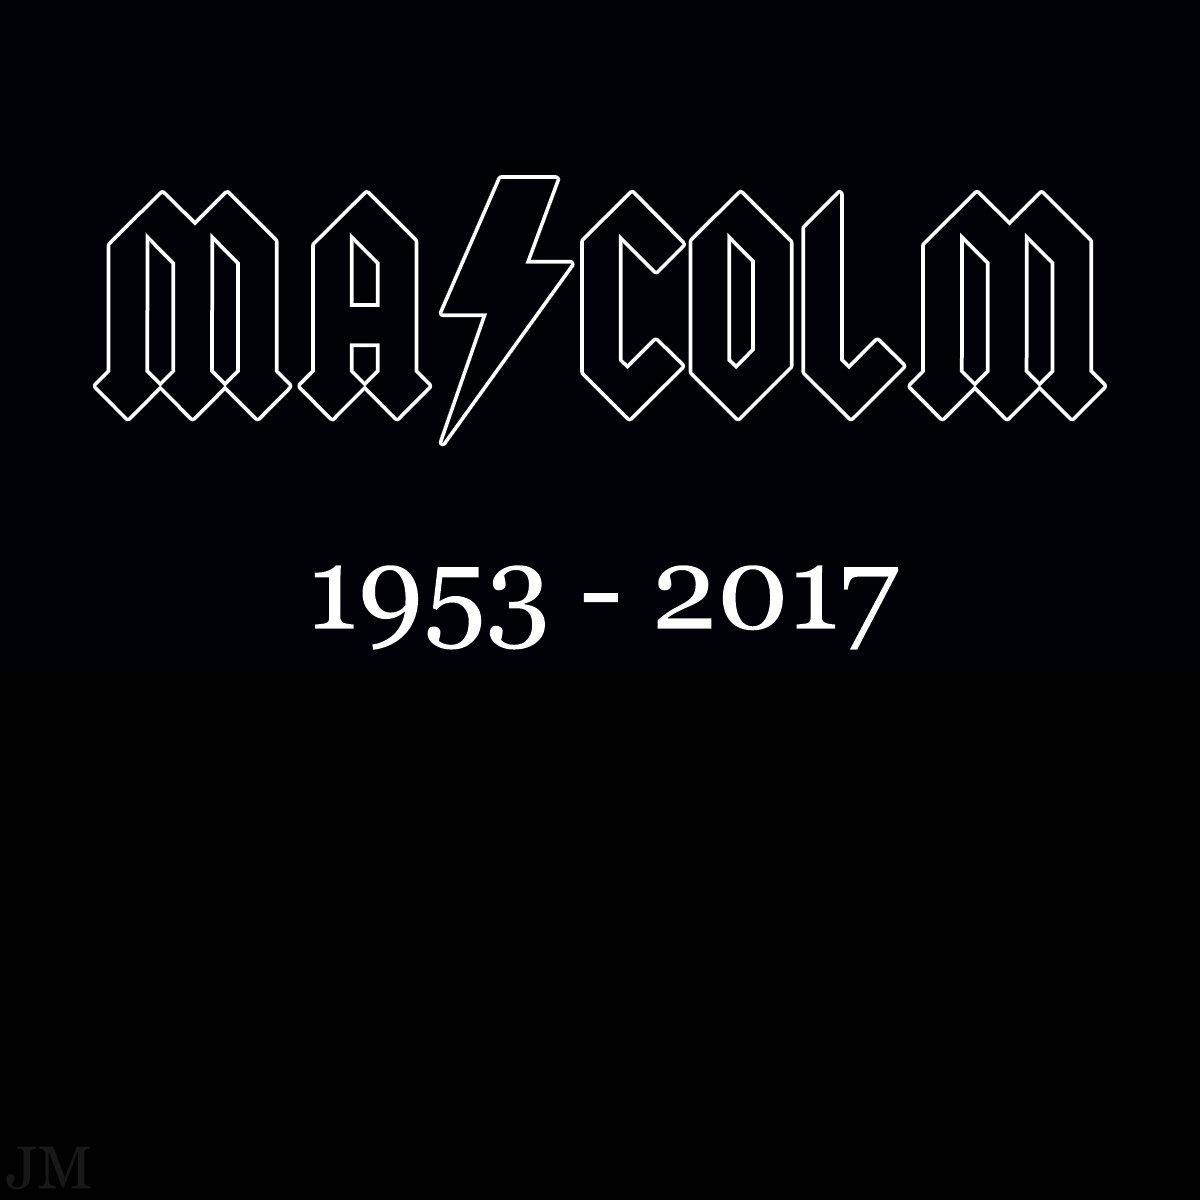 RIP Malcolm Young, one of the greatest rock guitarists of all time!  #ACDC #Legend #RIPMalcolm #saturdaymorning